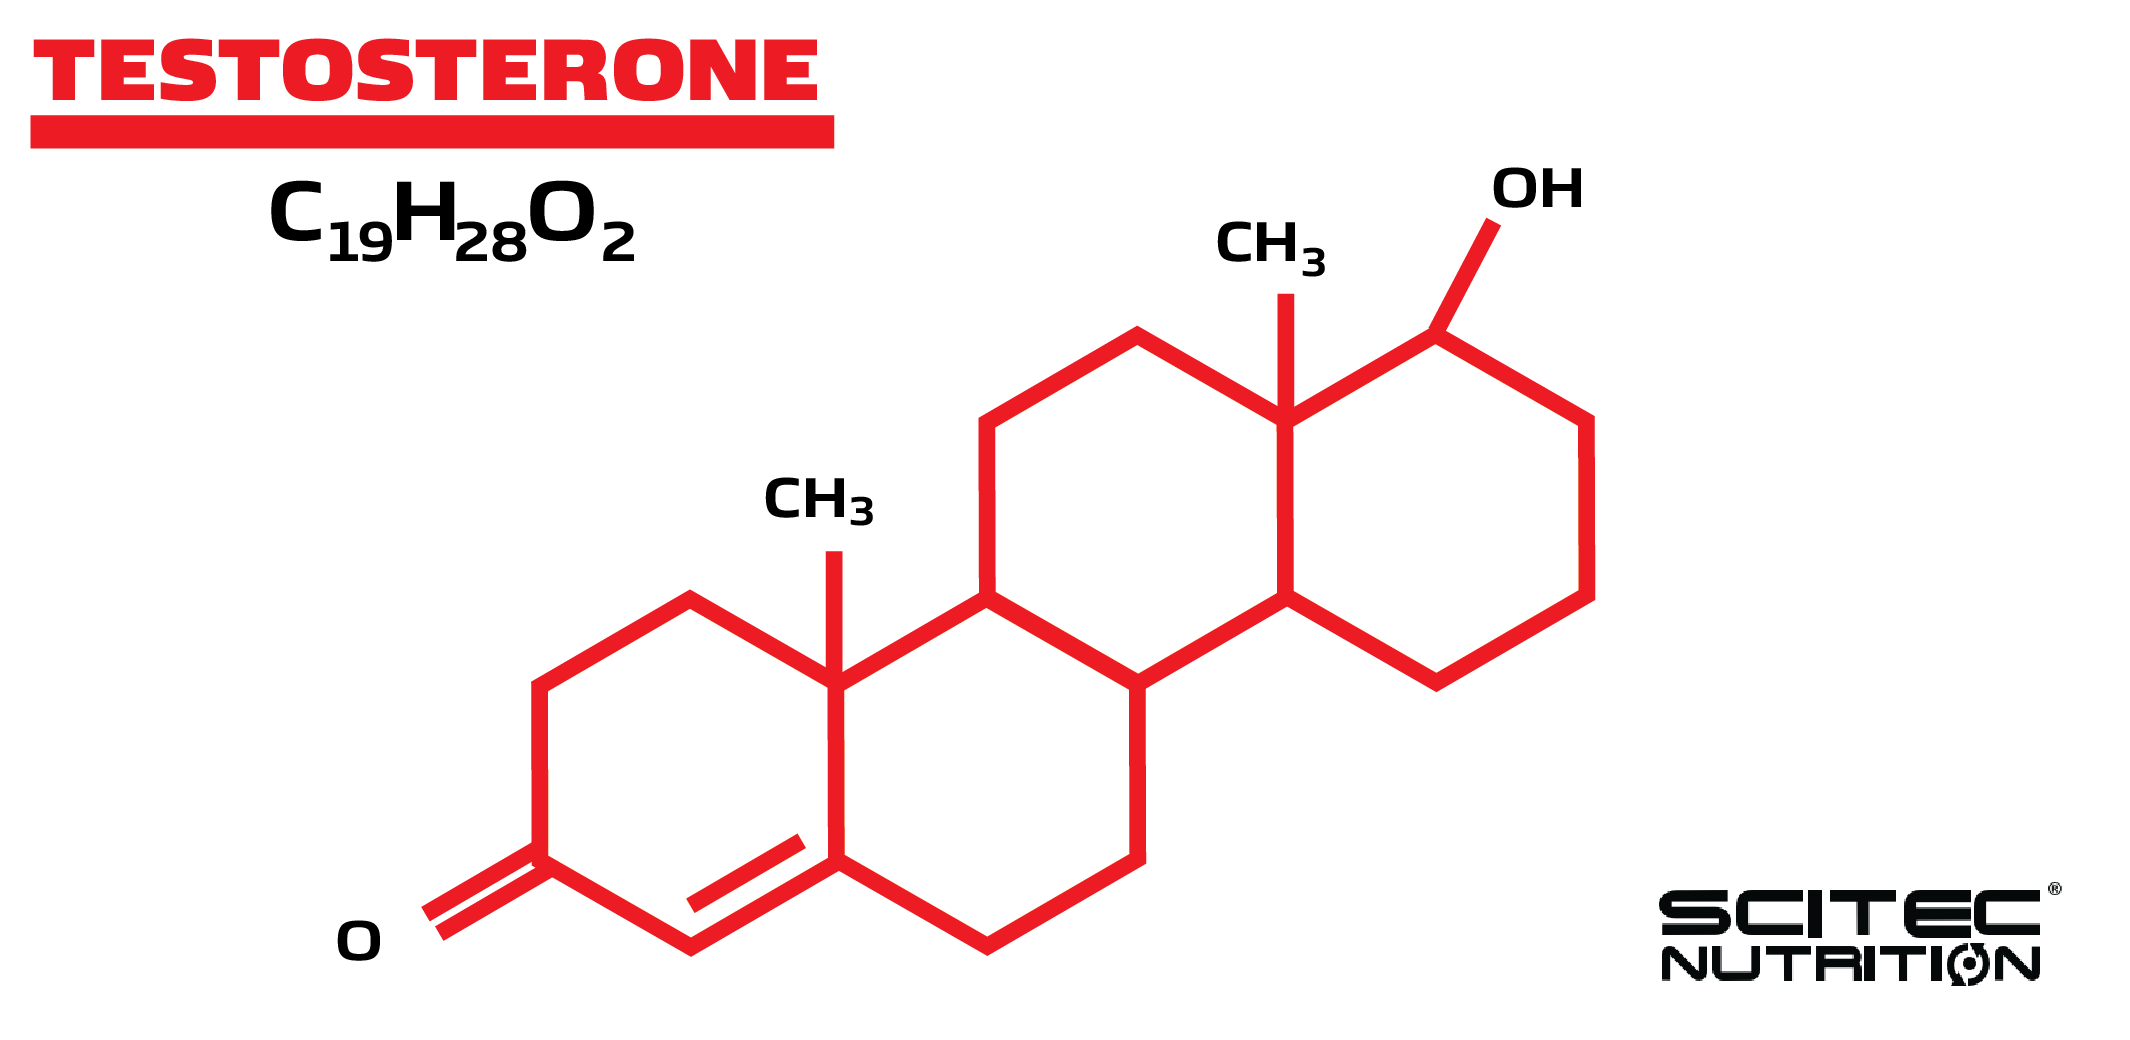 graphic showing chemical structure of testosterone